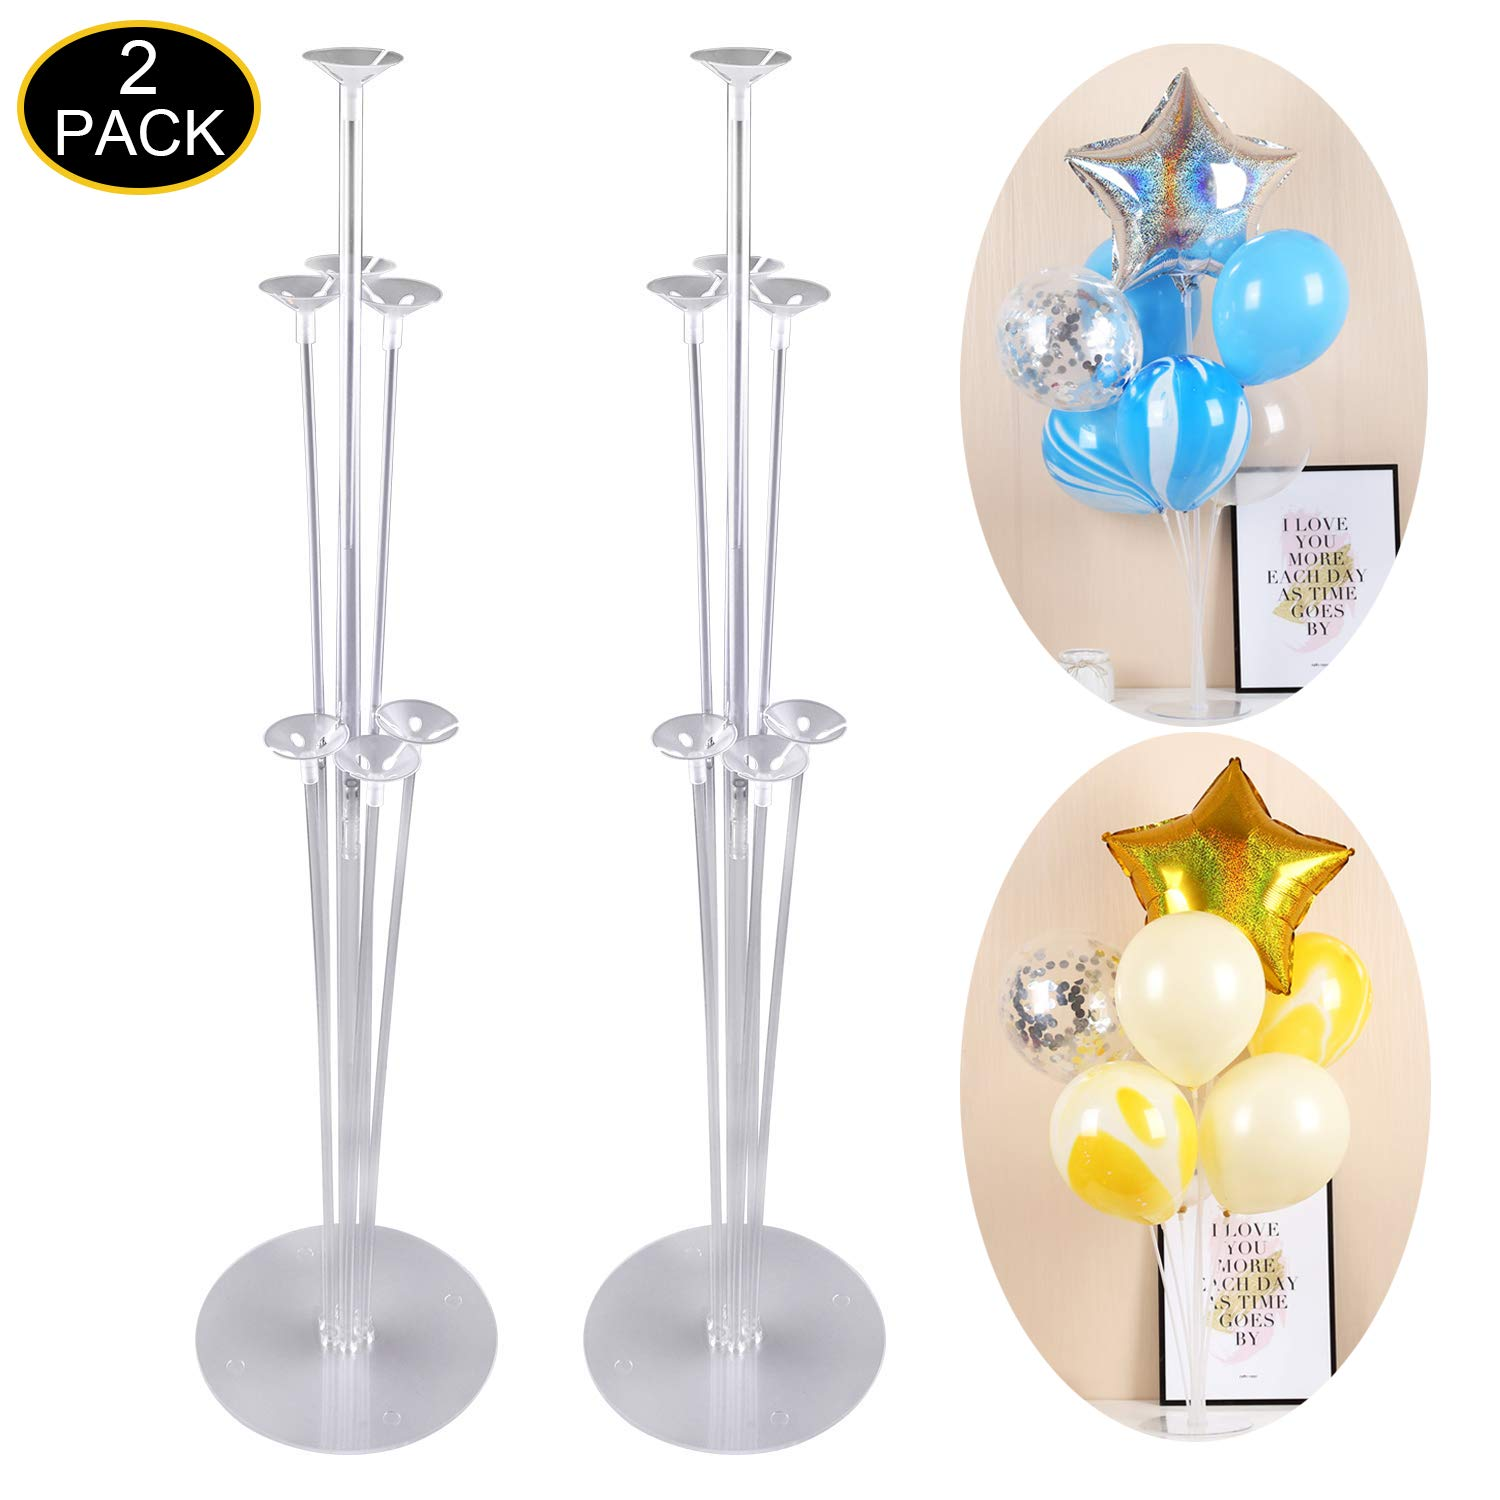 Balloon Stand Kit - Clear Table Balloon Stand with 14 Balloon Sticks,14 Balloon Cups and 2 Balloon Base for Brirthday Wedding Party Decorations(2 Set)